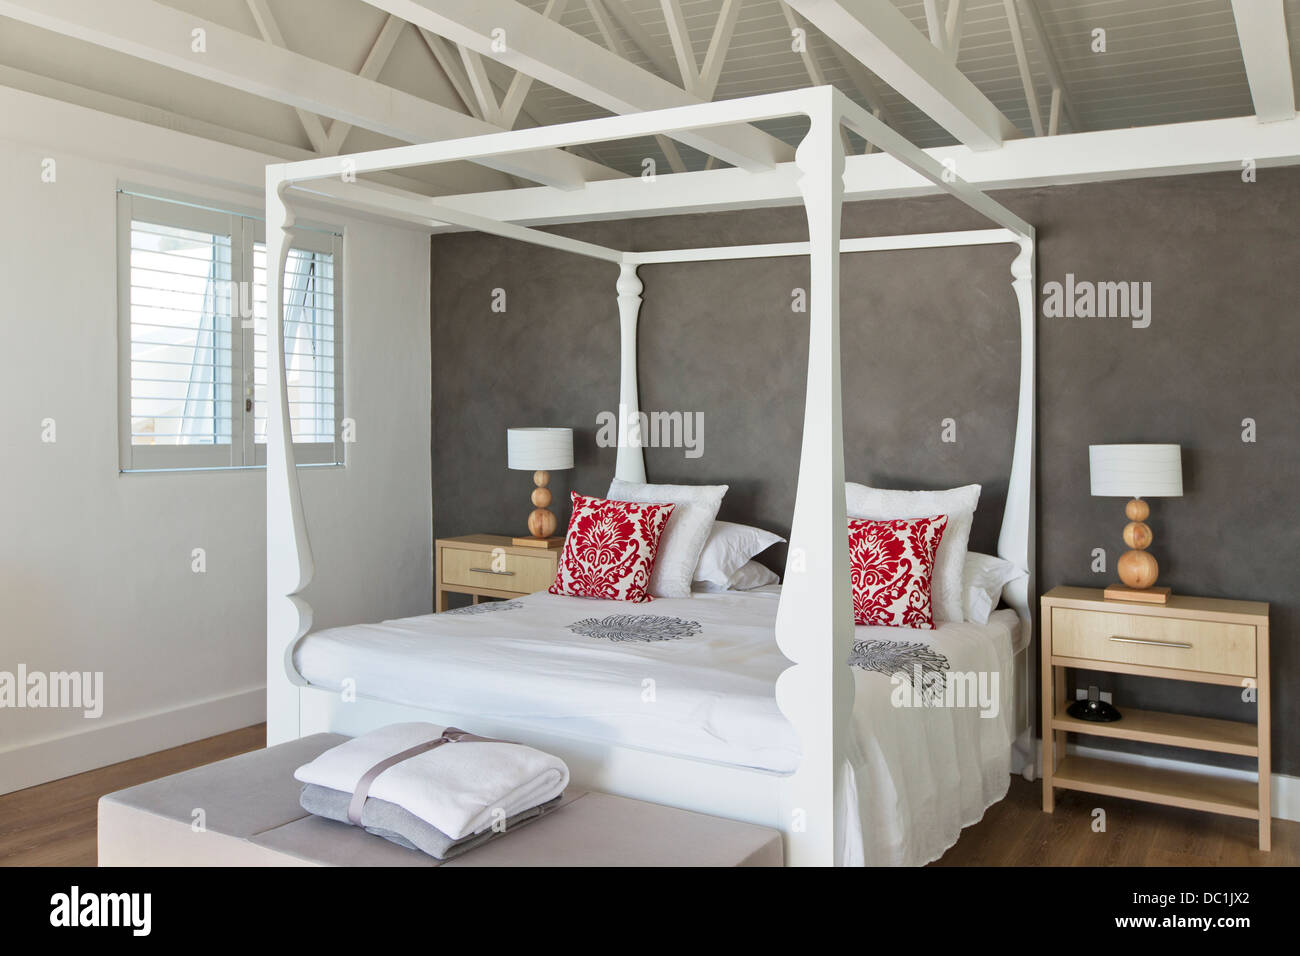 Four Poster Bed In Luxury Bedroom High Resolution Stock Photography And Images Alamy